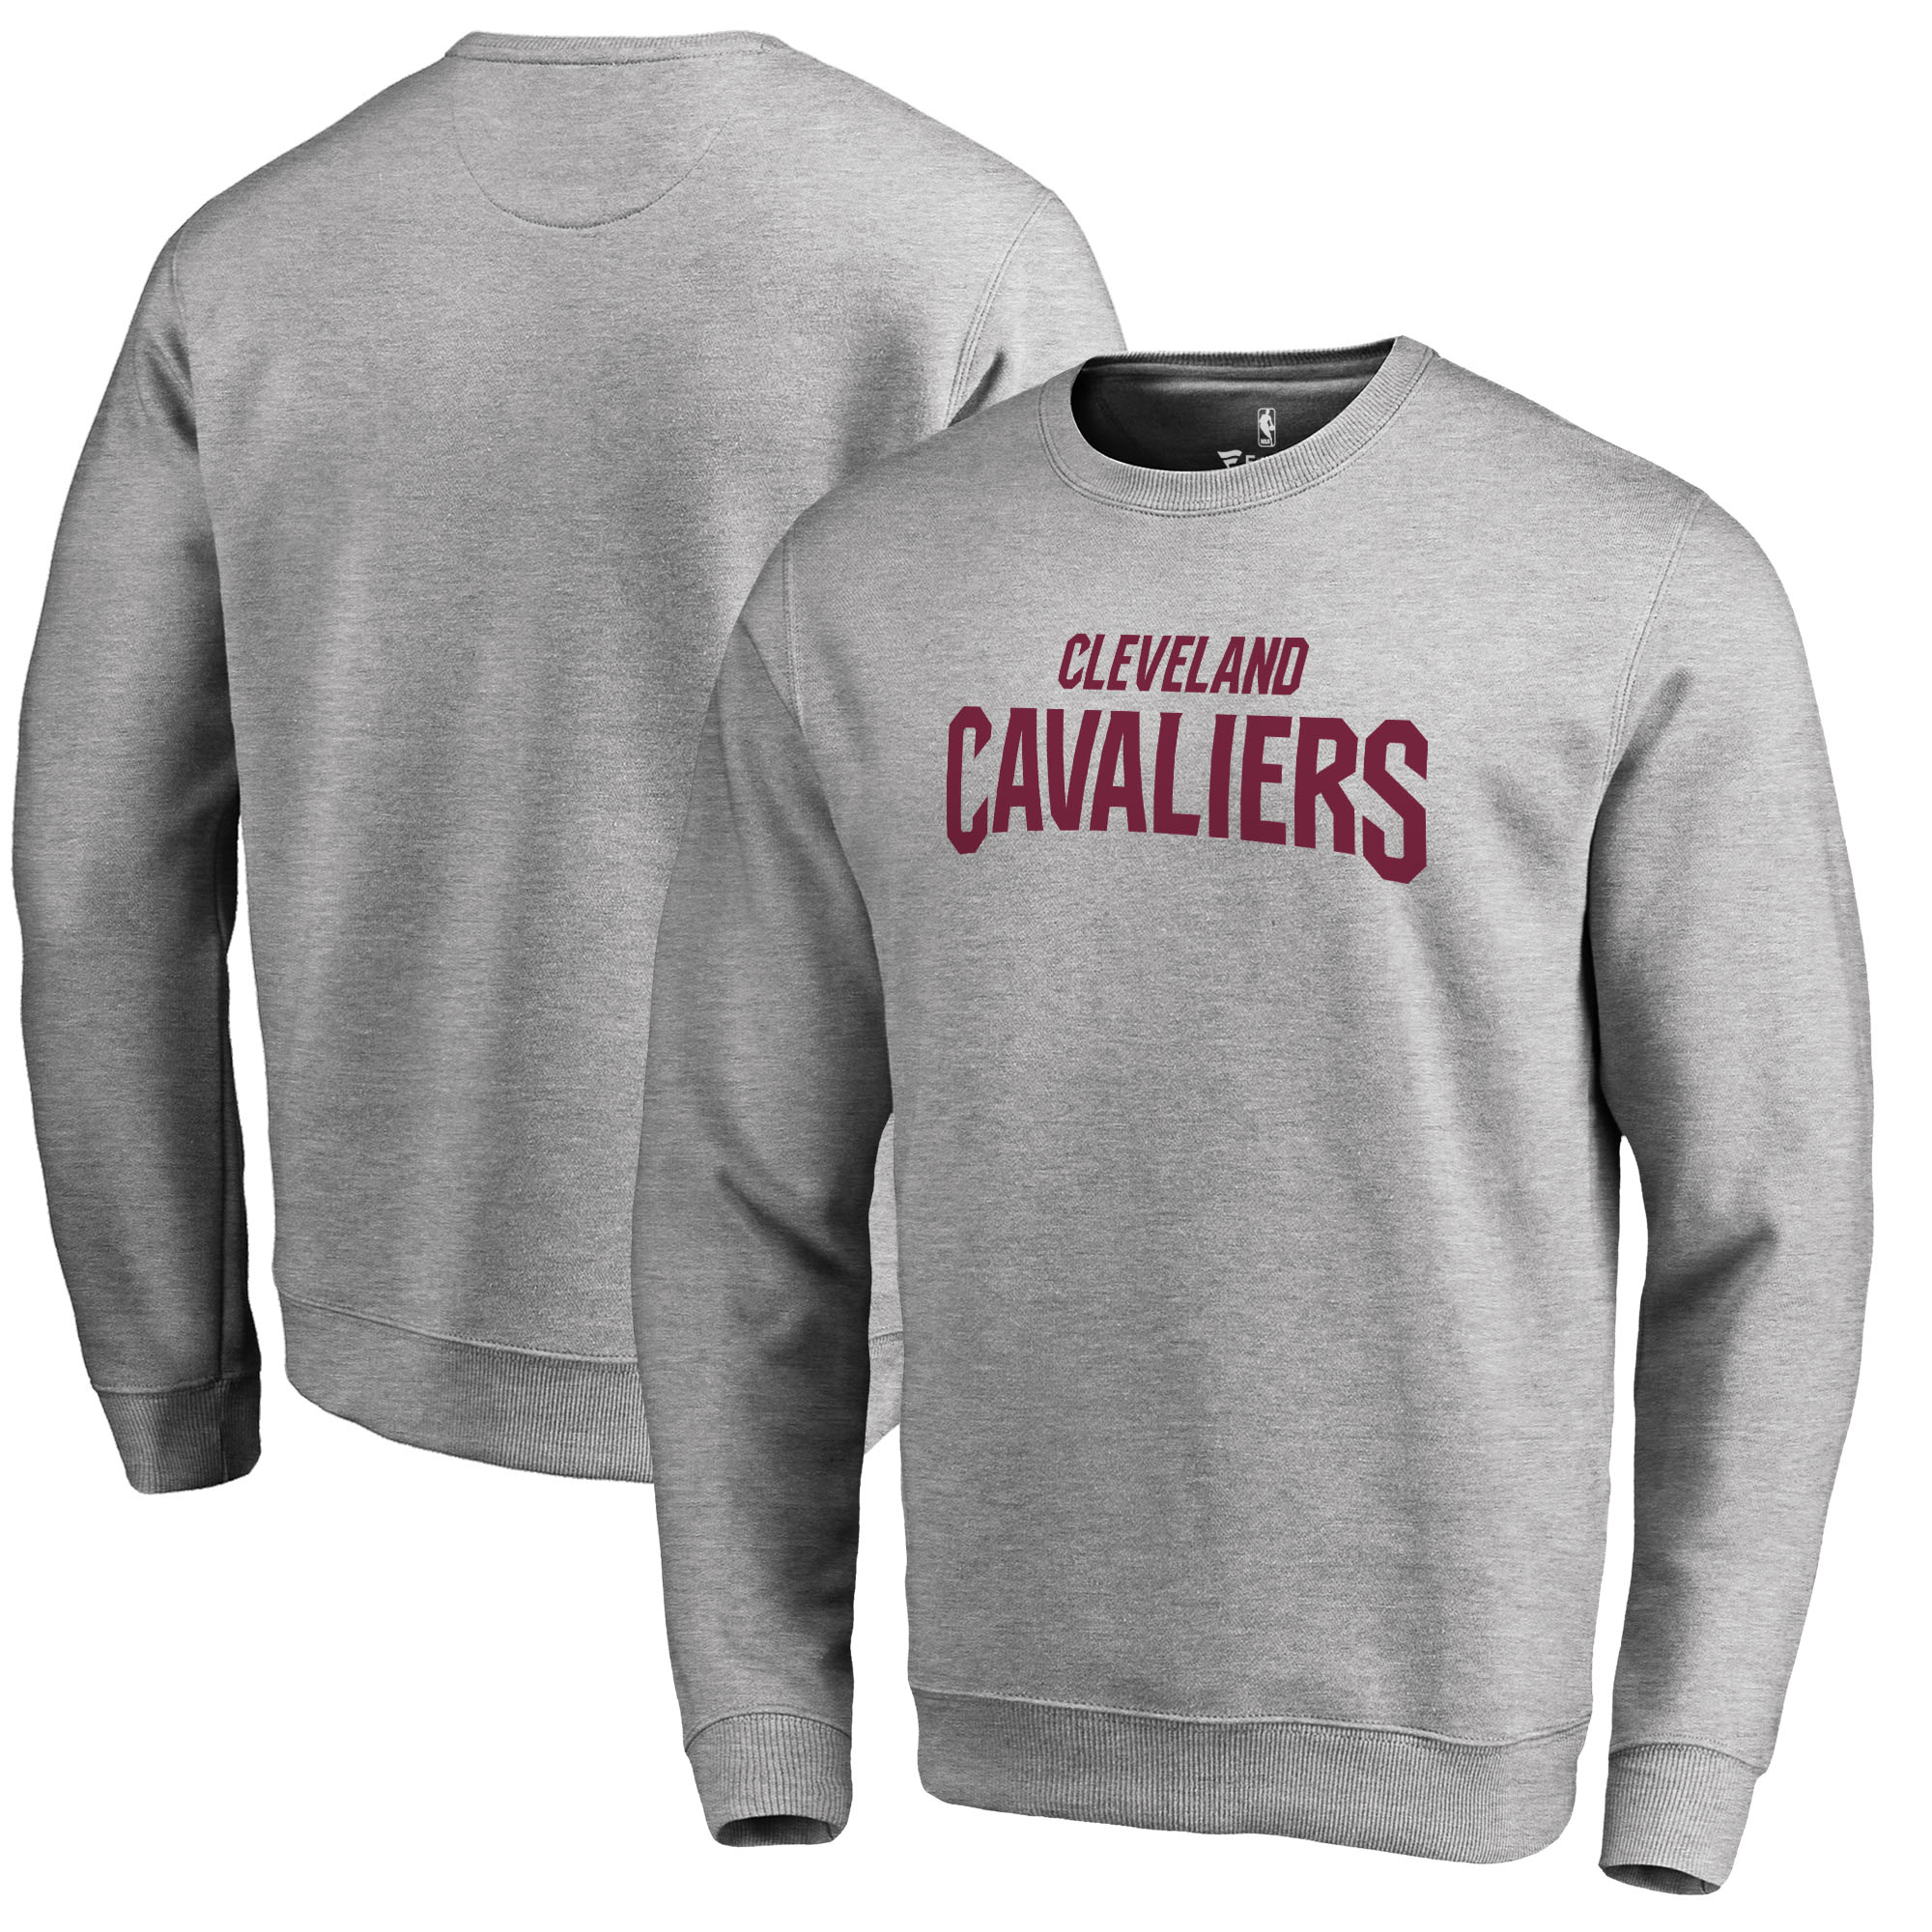 Cleveland Cavaliers Fanatics Branded Wordmark Pullover Sweatshirt - Heathered Gray